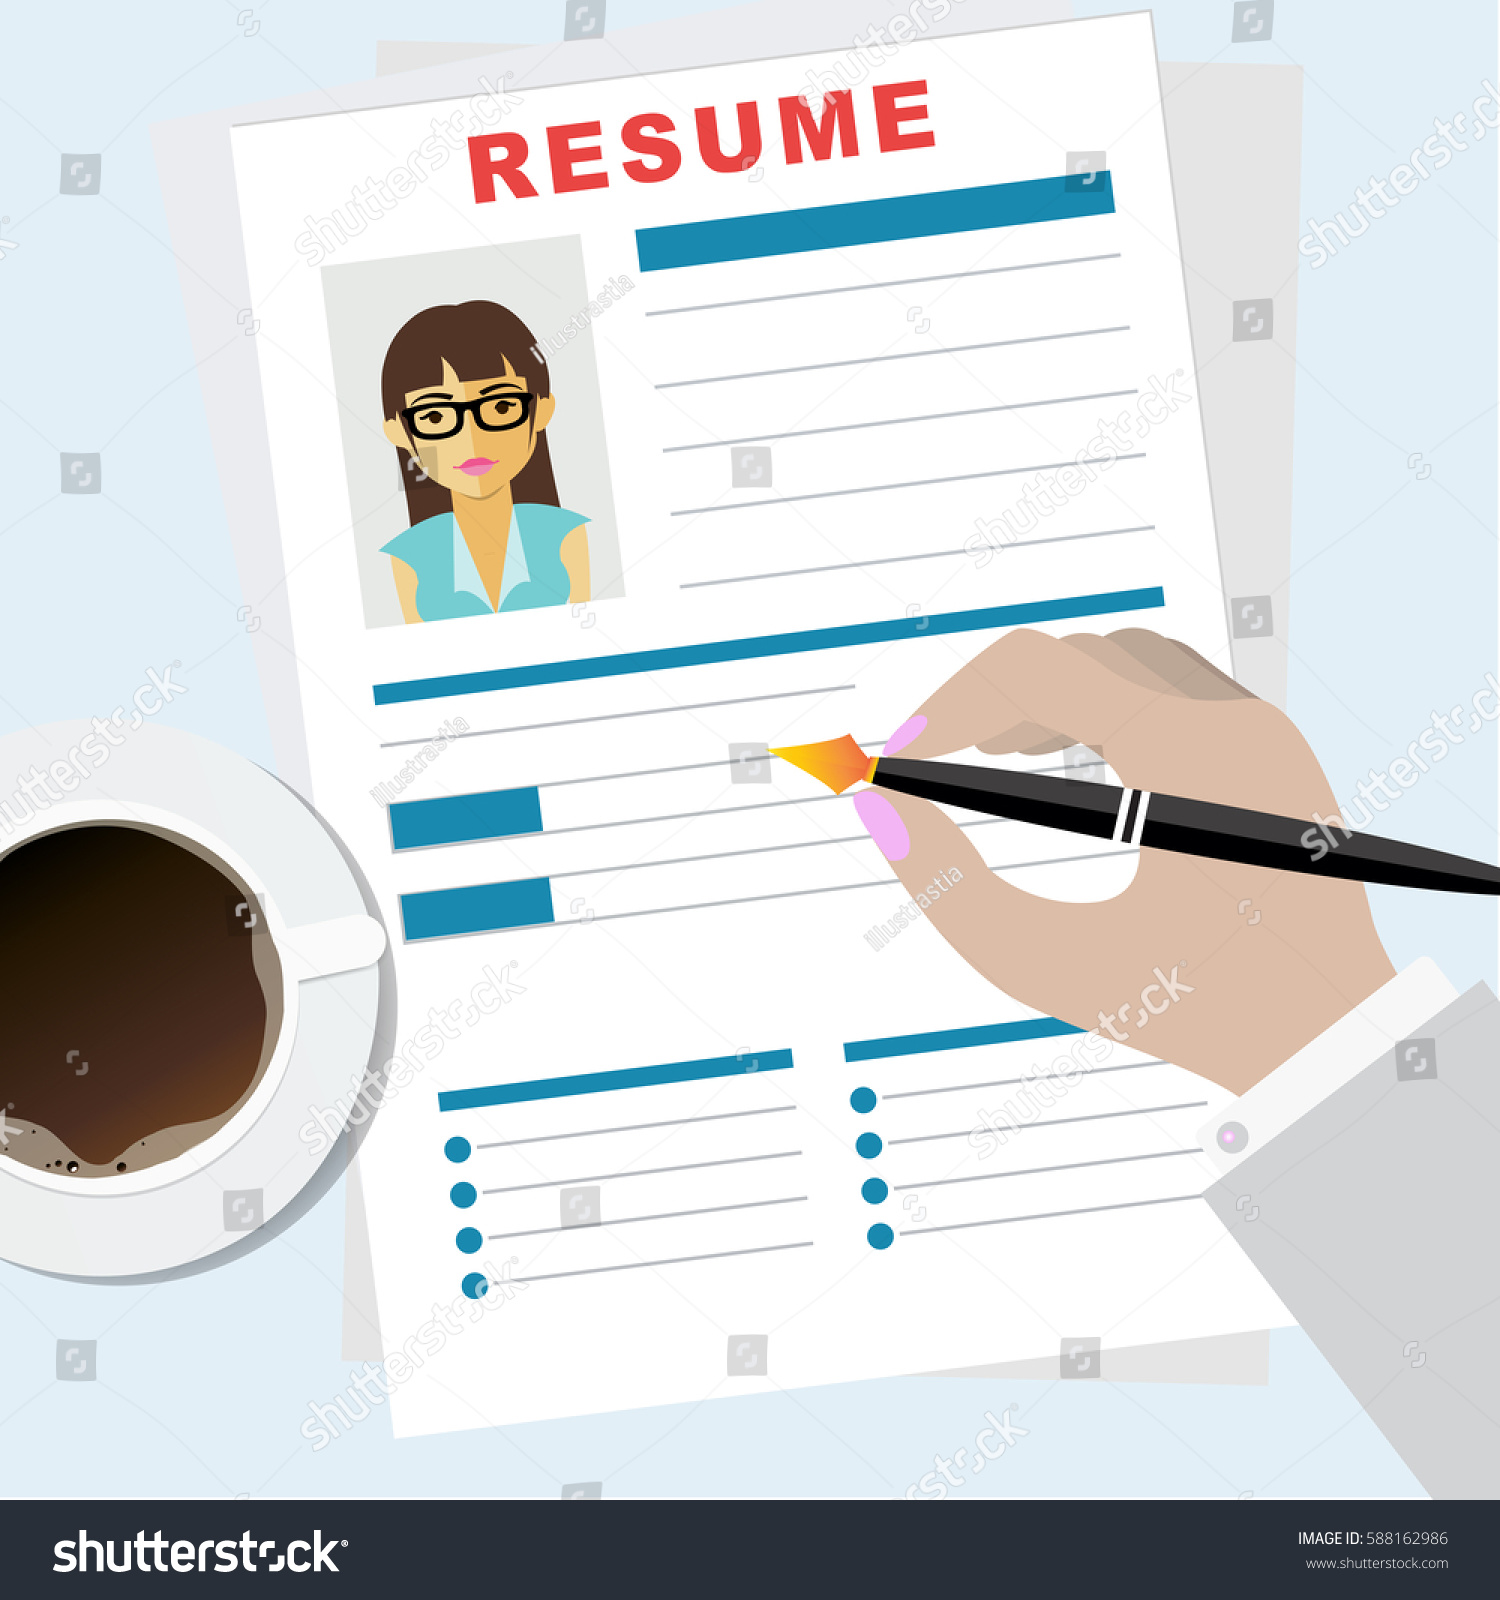 resume writing concept man writing business stock vector 588162986